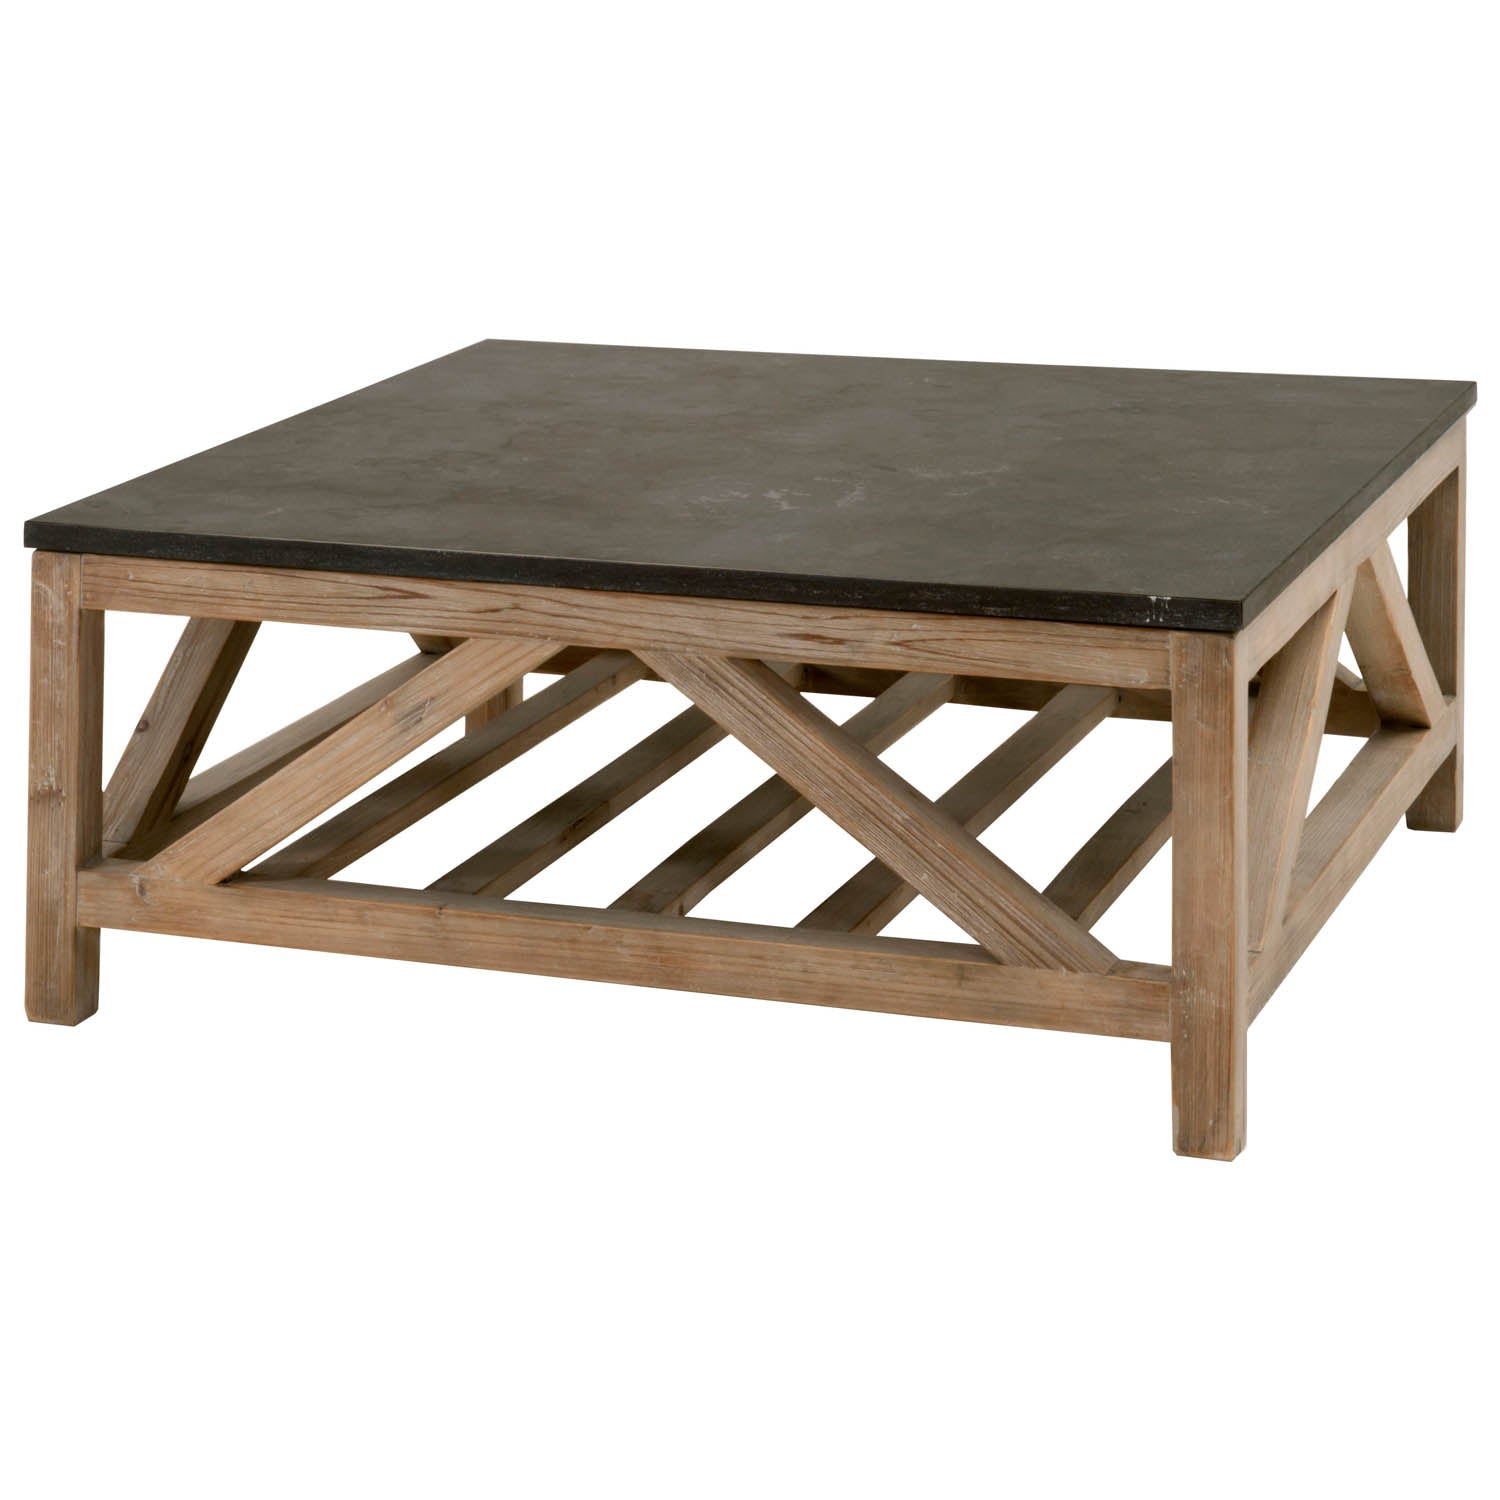 Blue Stone Square Coffee Table J Turner Co